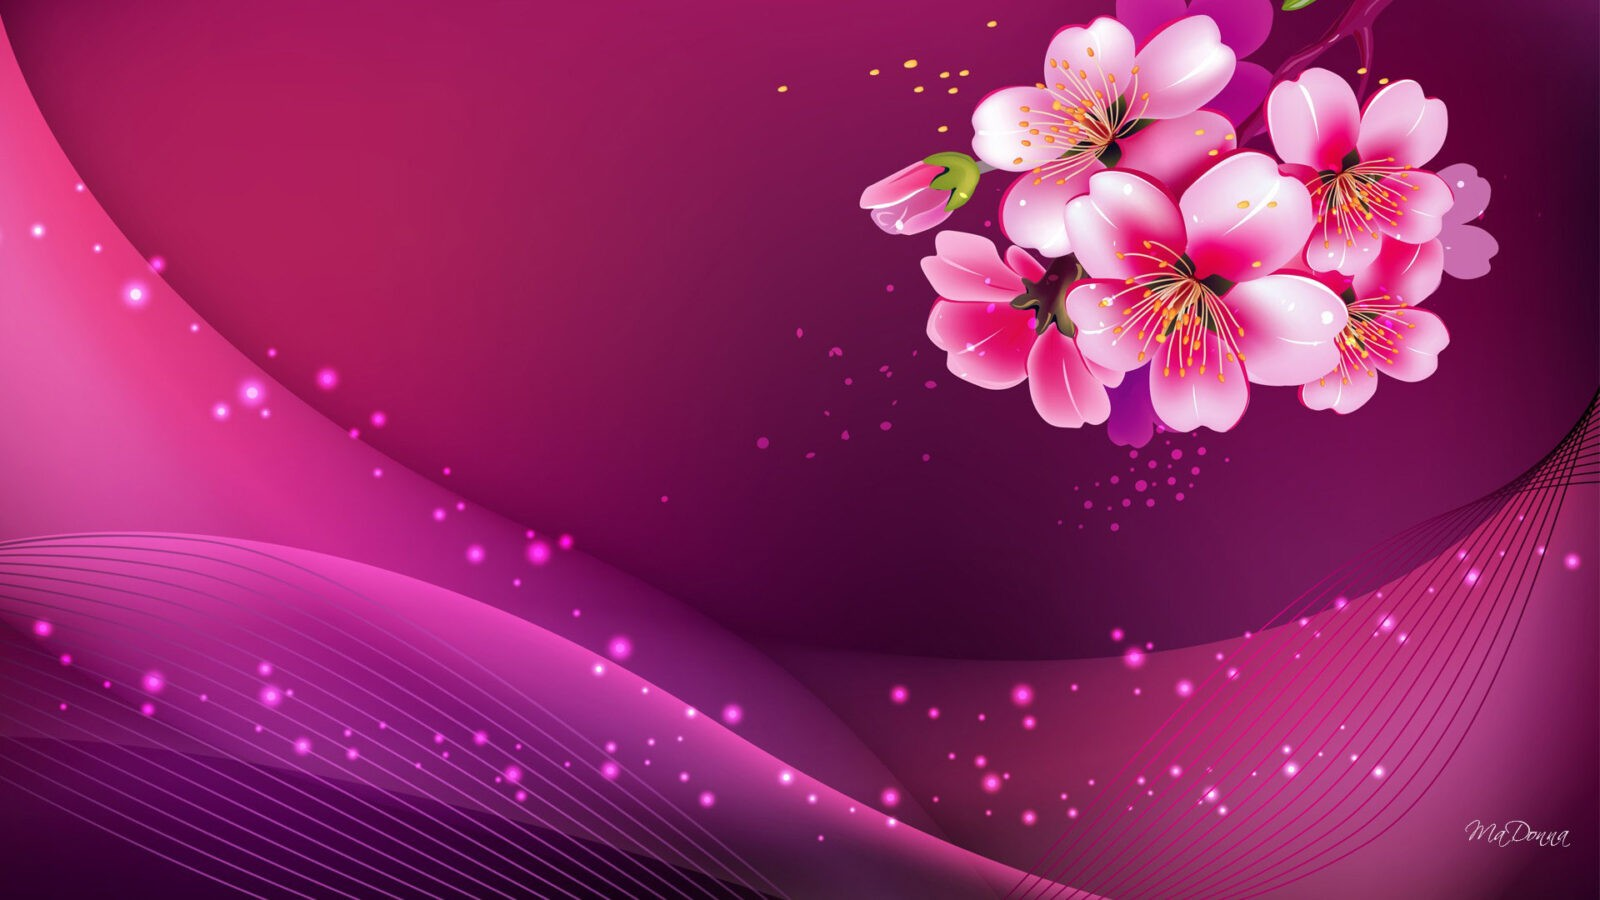 50 Ipad Air Wallpapers In High Definition For Free Download: 30+ Pink Abstract HD Wallpapers Download